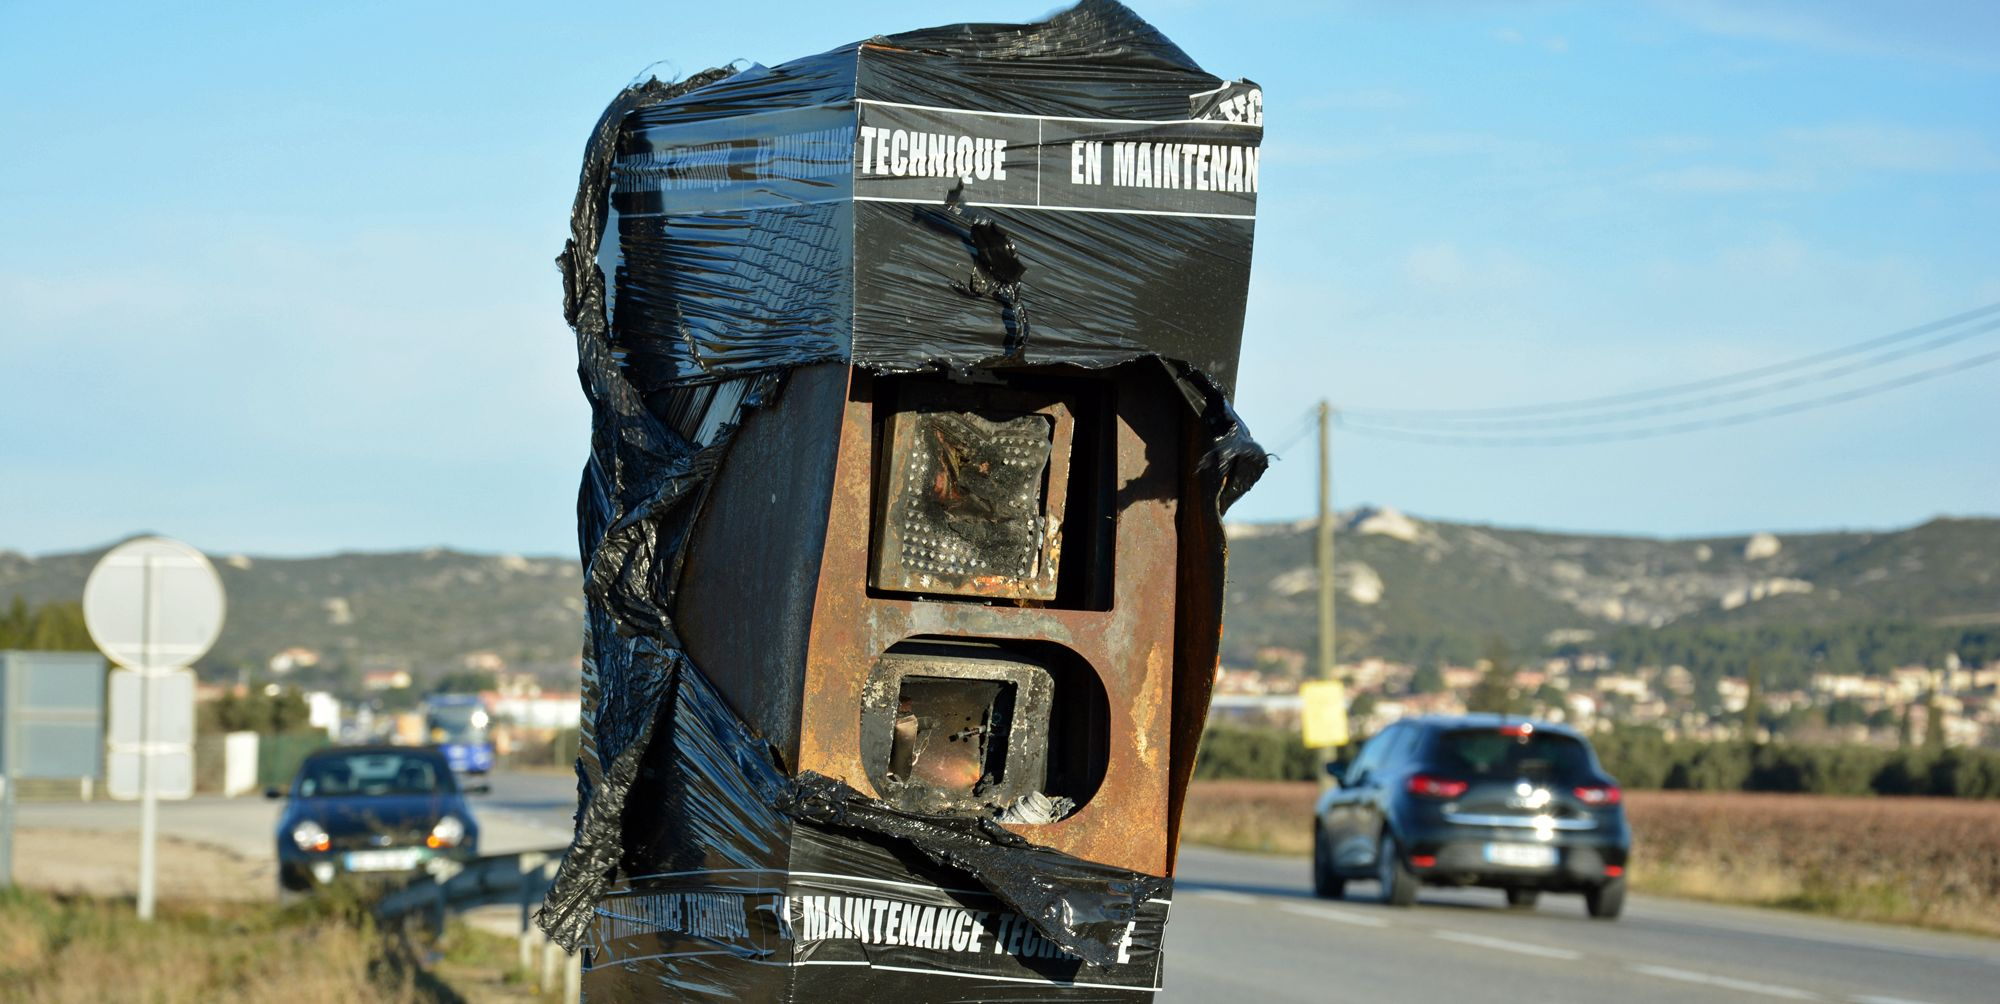 French Protesters Have Deliberately Trashed More Than Half of Their Traffic Cameras